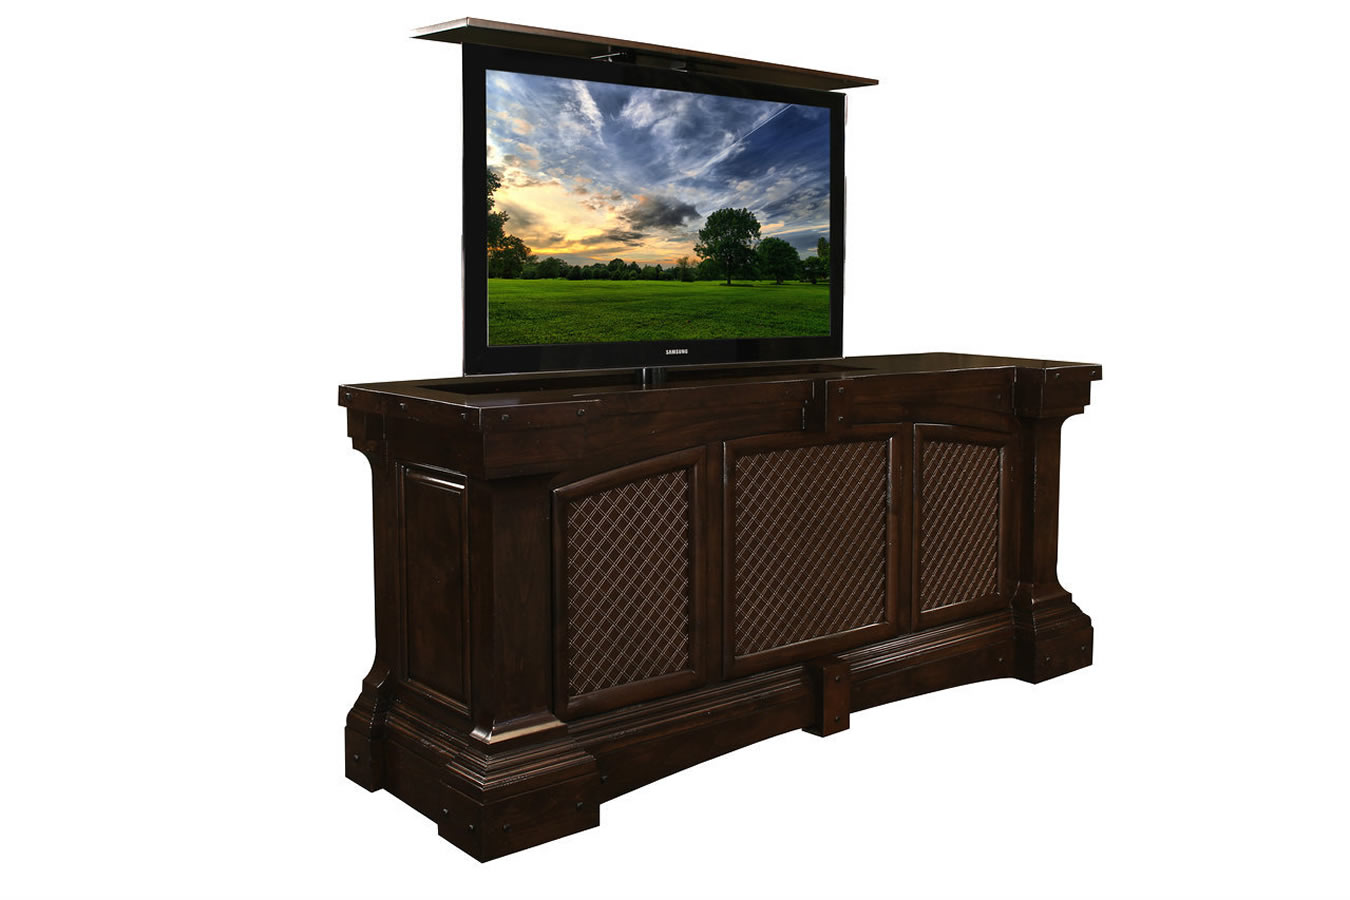 Fairbanks Rustic Designer TV Lift Cabinet holds up to 55 inch flat screen or curved TVs